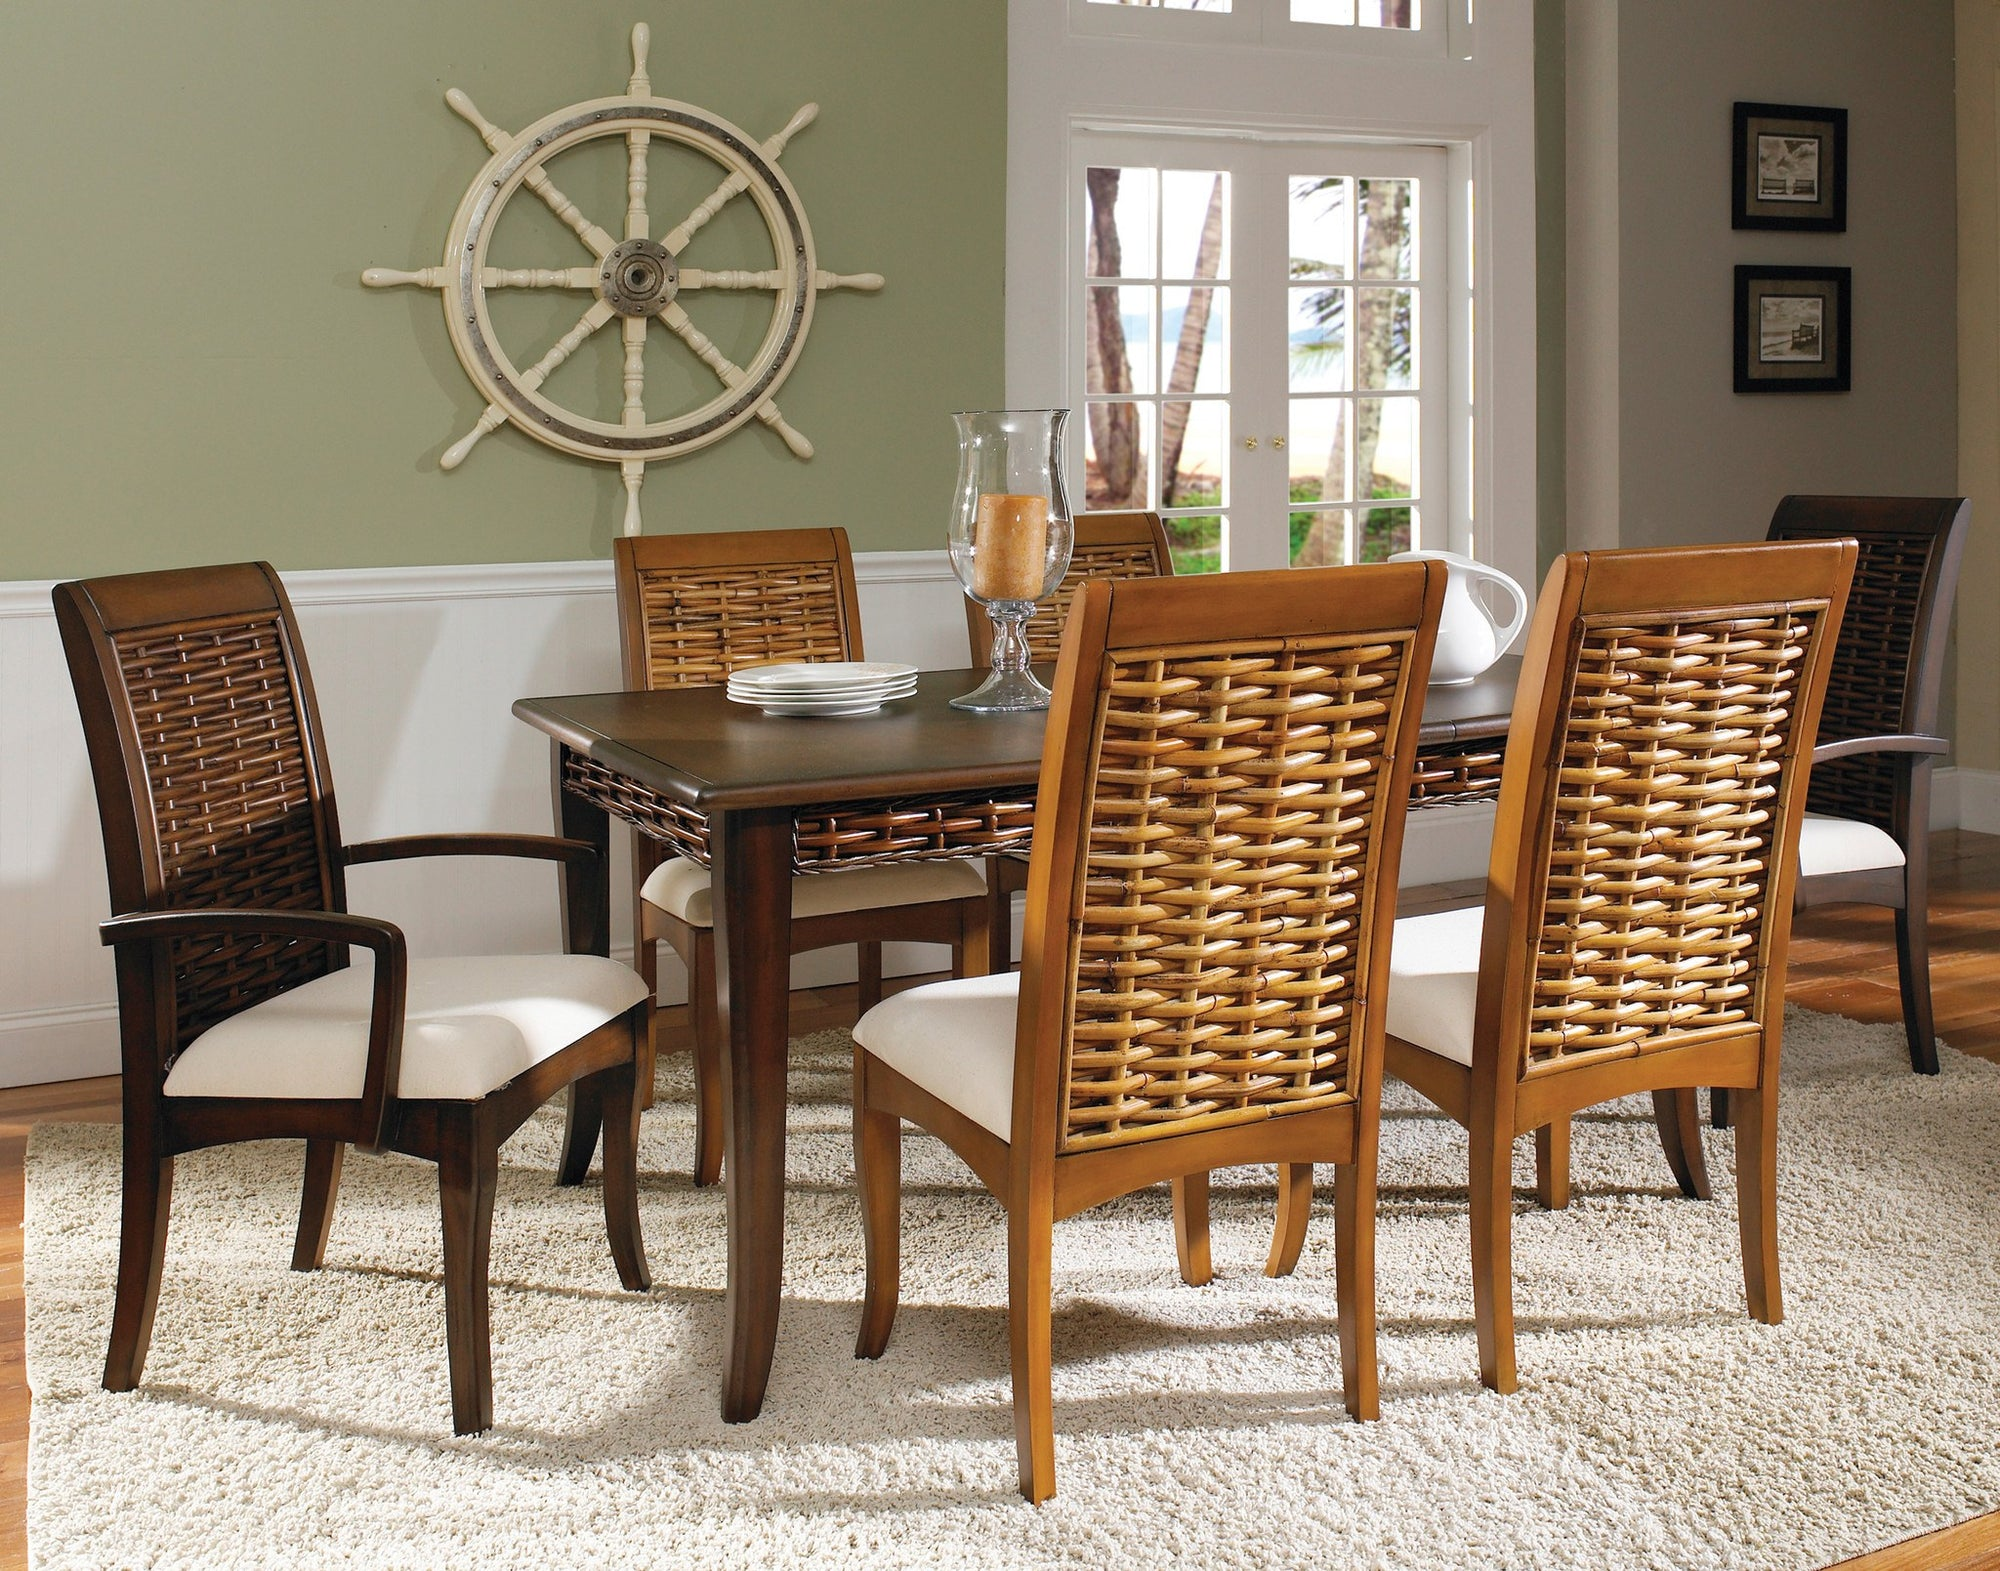 Designer Wicker & Rattan By Tribor Freeport Dining Side Chair by Designer Wicker from Tribor Dining Chair - Rattan Imports